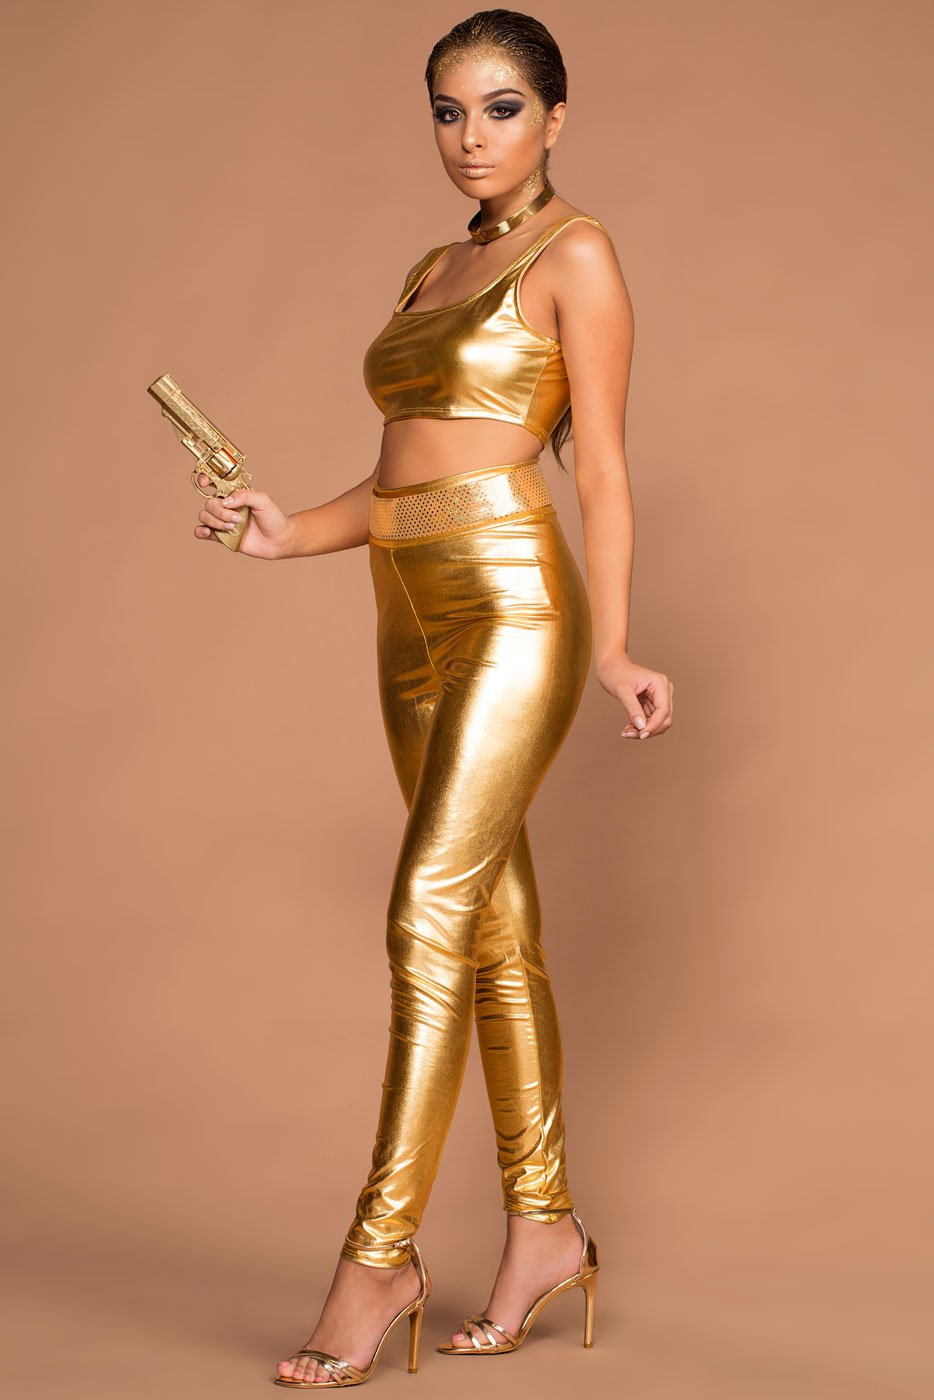 Leggings - Bond 007 Metallic Gold Top And Leggings Halloween Costume Set